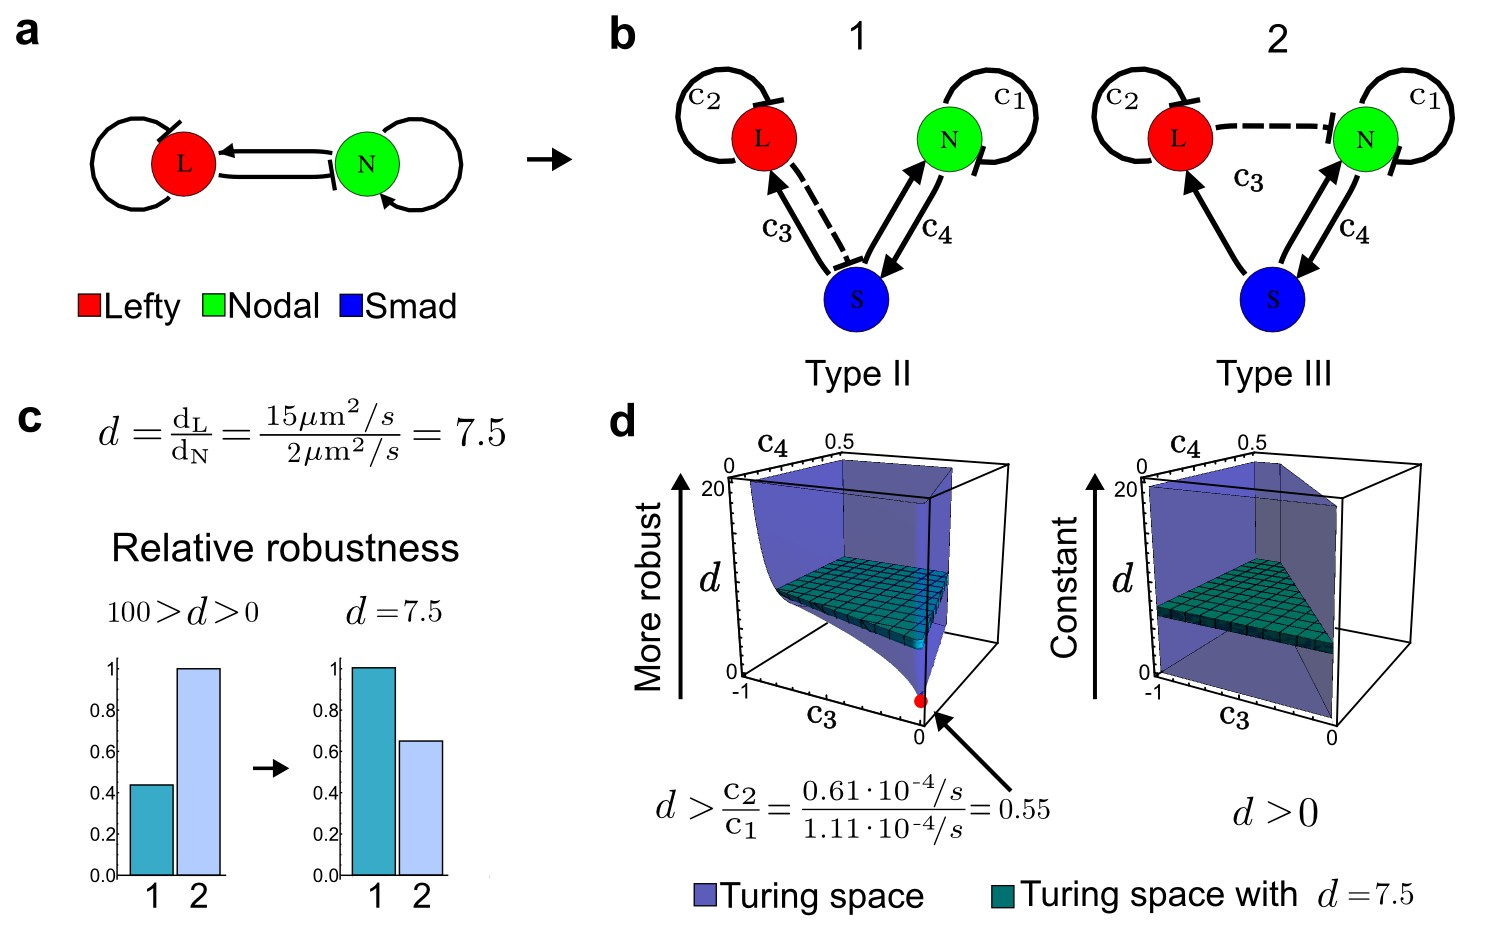 High Throughput Mathematical Analysis Identifies Turing Networks For Network Topology Diagram Fully Connected Modeling Of The Nodal Lefty Reaction Diffusion System With Realistic Signaling A Schematic